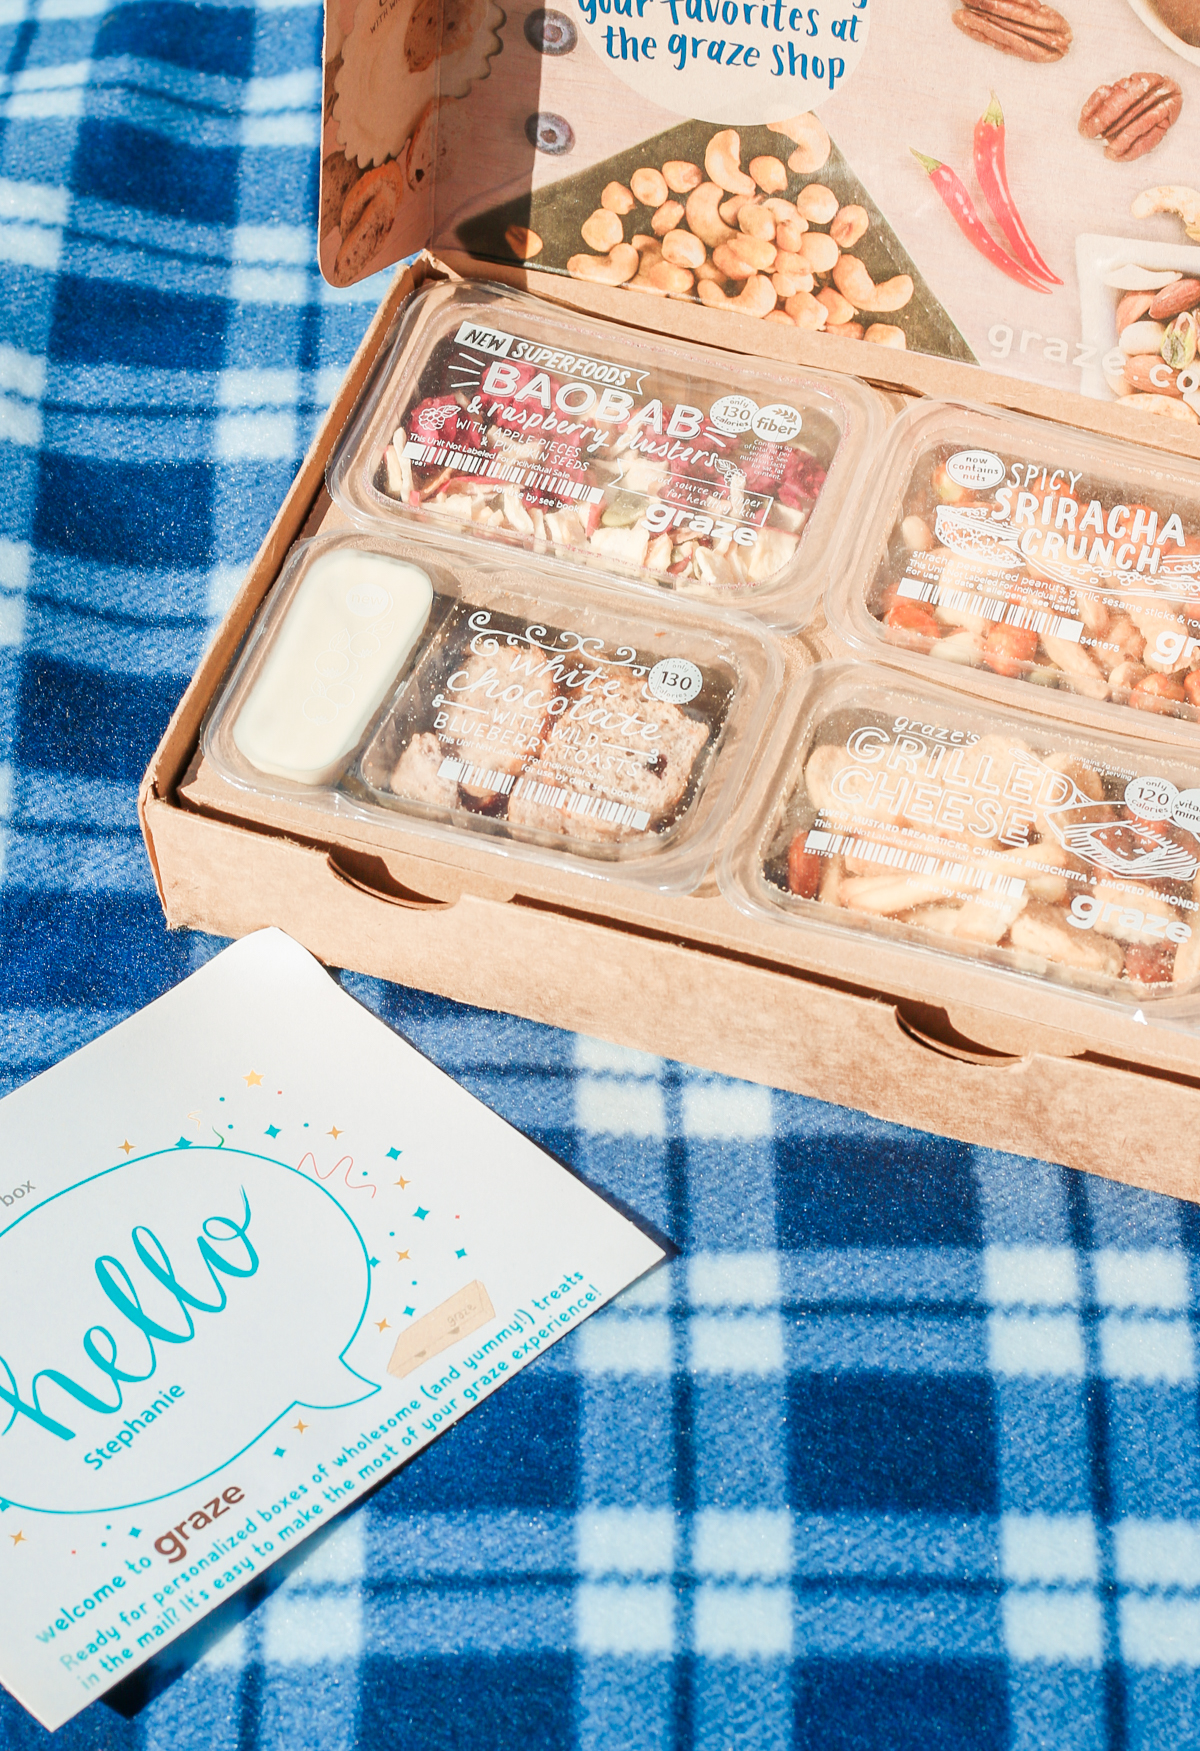 Graze snack box review, Graze monthly snack delivery service review, Graze snack packs, how to get a free Graze snack box, healthy snack boxes from Graze, Grazing Made Easy: The New Way to Snack Smarter by southern lifestyle blogger Stephanie Ziajka from Diary of a Debutante